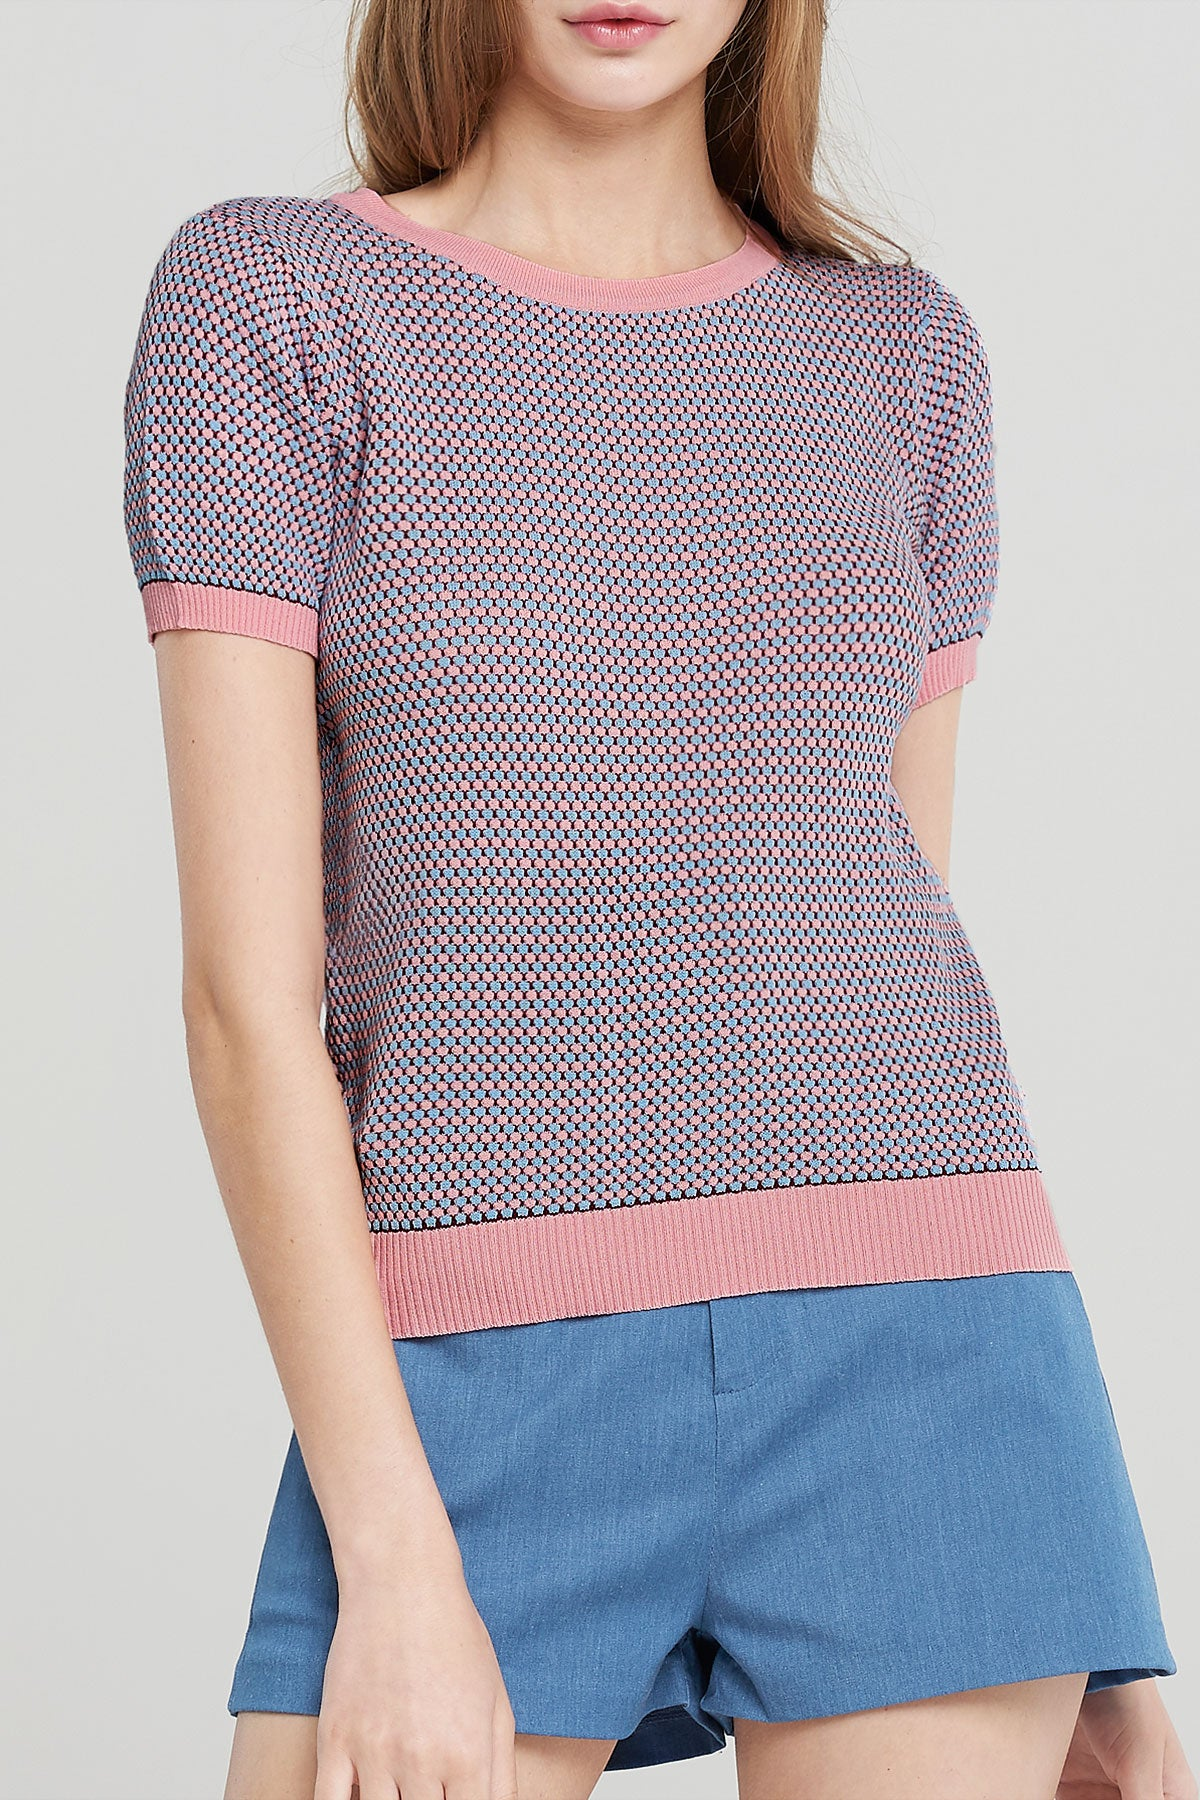 Leah Jacquard Knitted Top-Pink